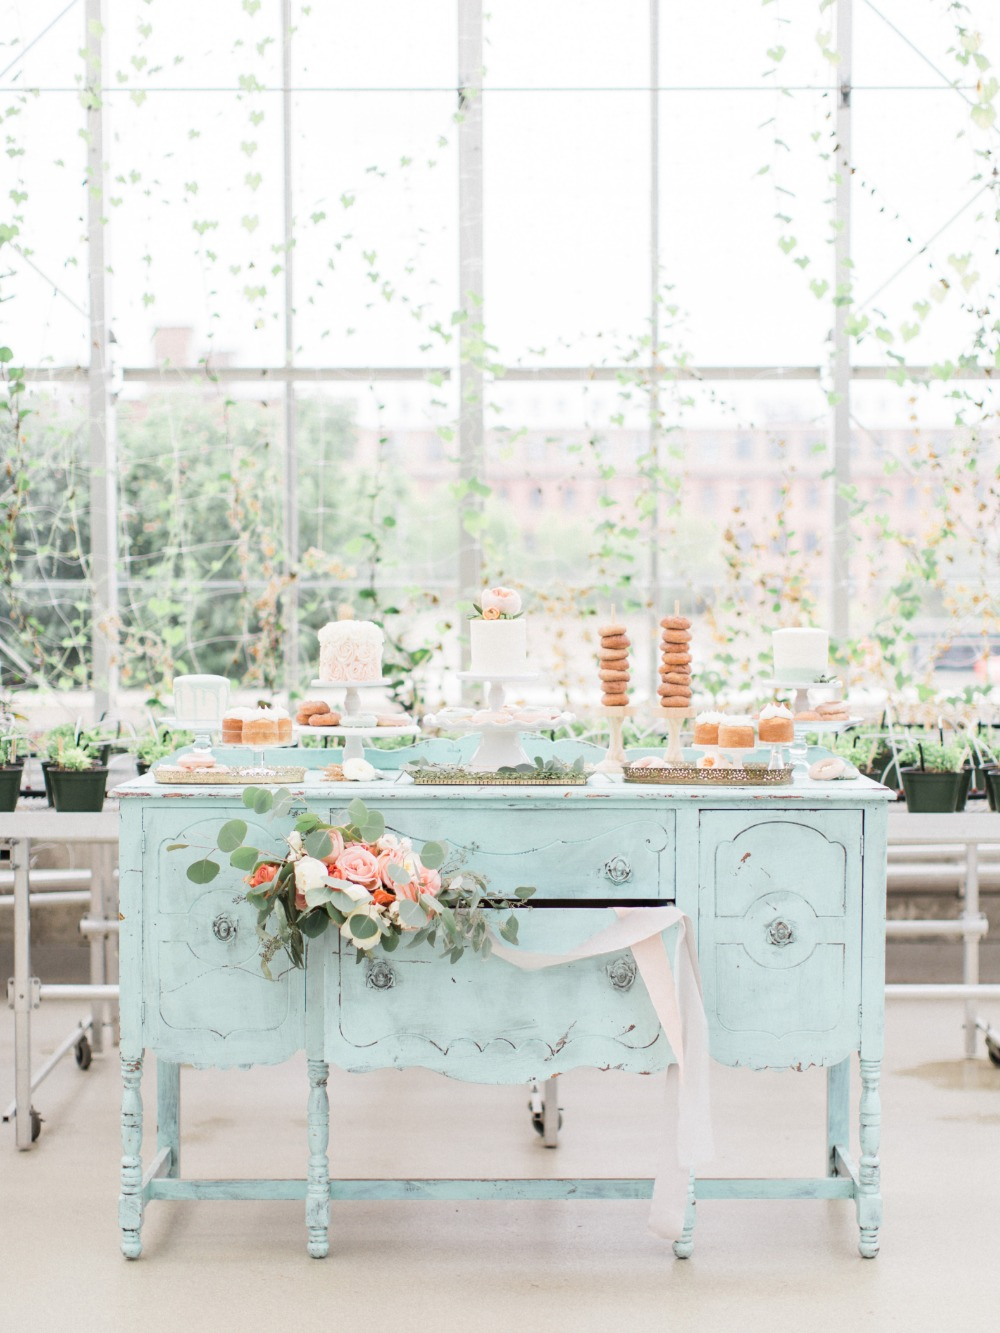 Gorgeous blue vintage inspired cake table